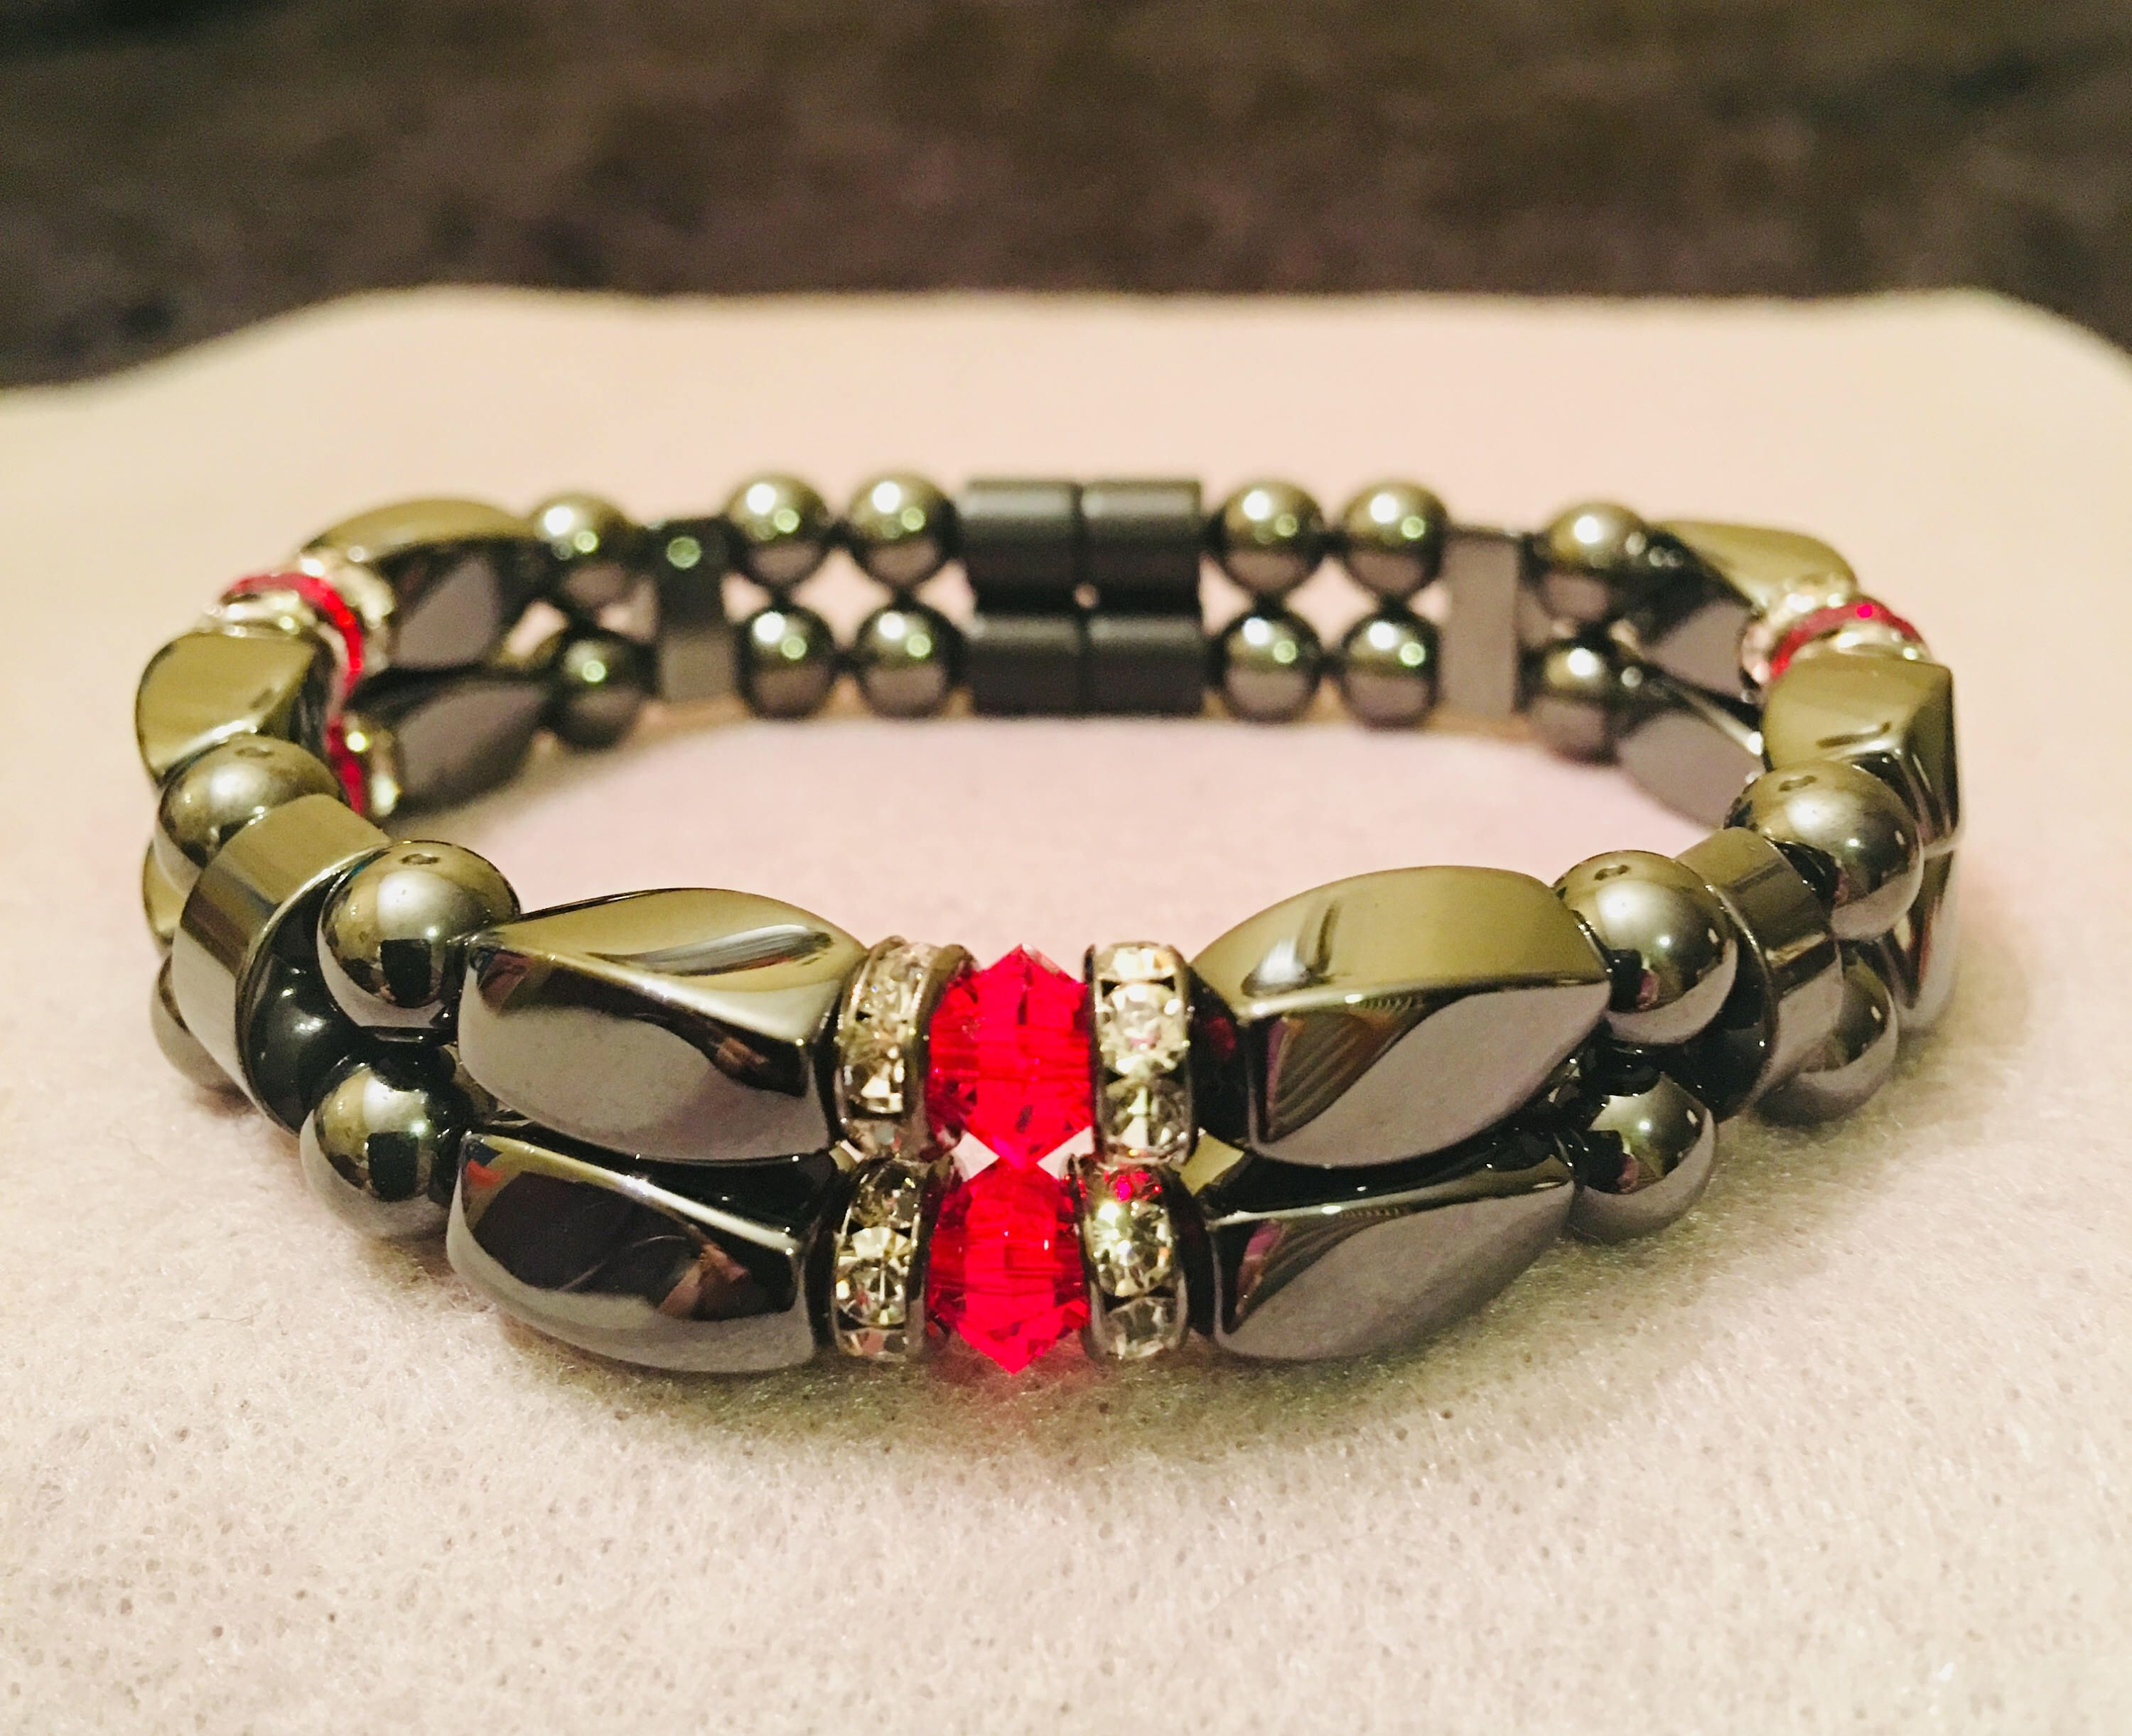 e0bc24034 Here is January Birthstone Garnet Red Swarovski High Power Magnetic  Hematite Bracelet. FREE SHIPPING until January 31st on this item!